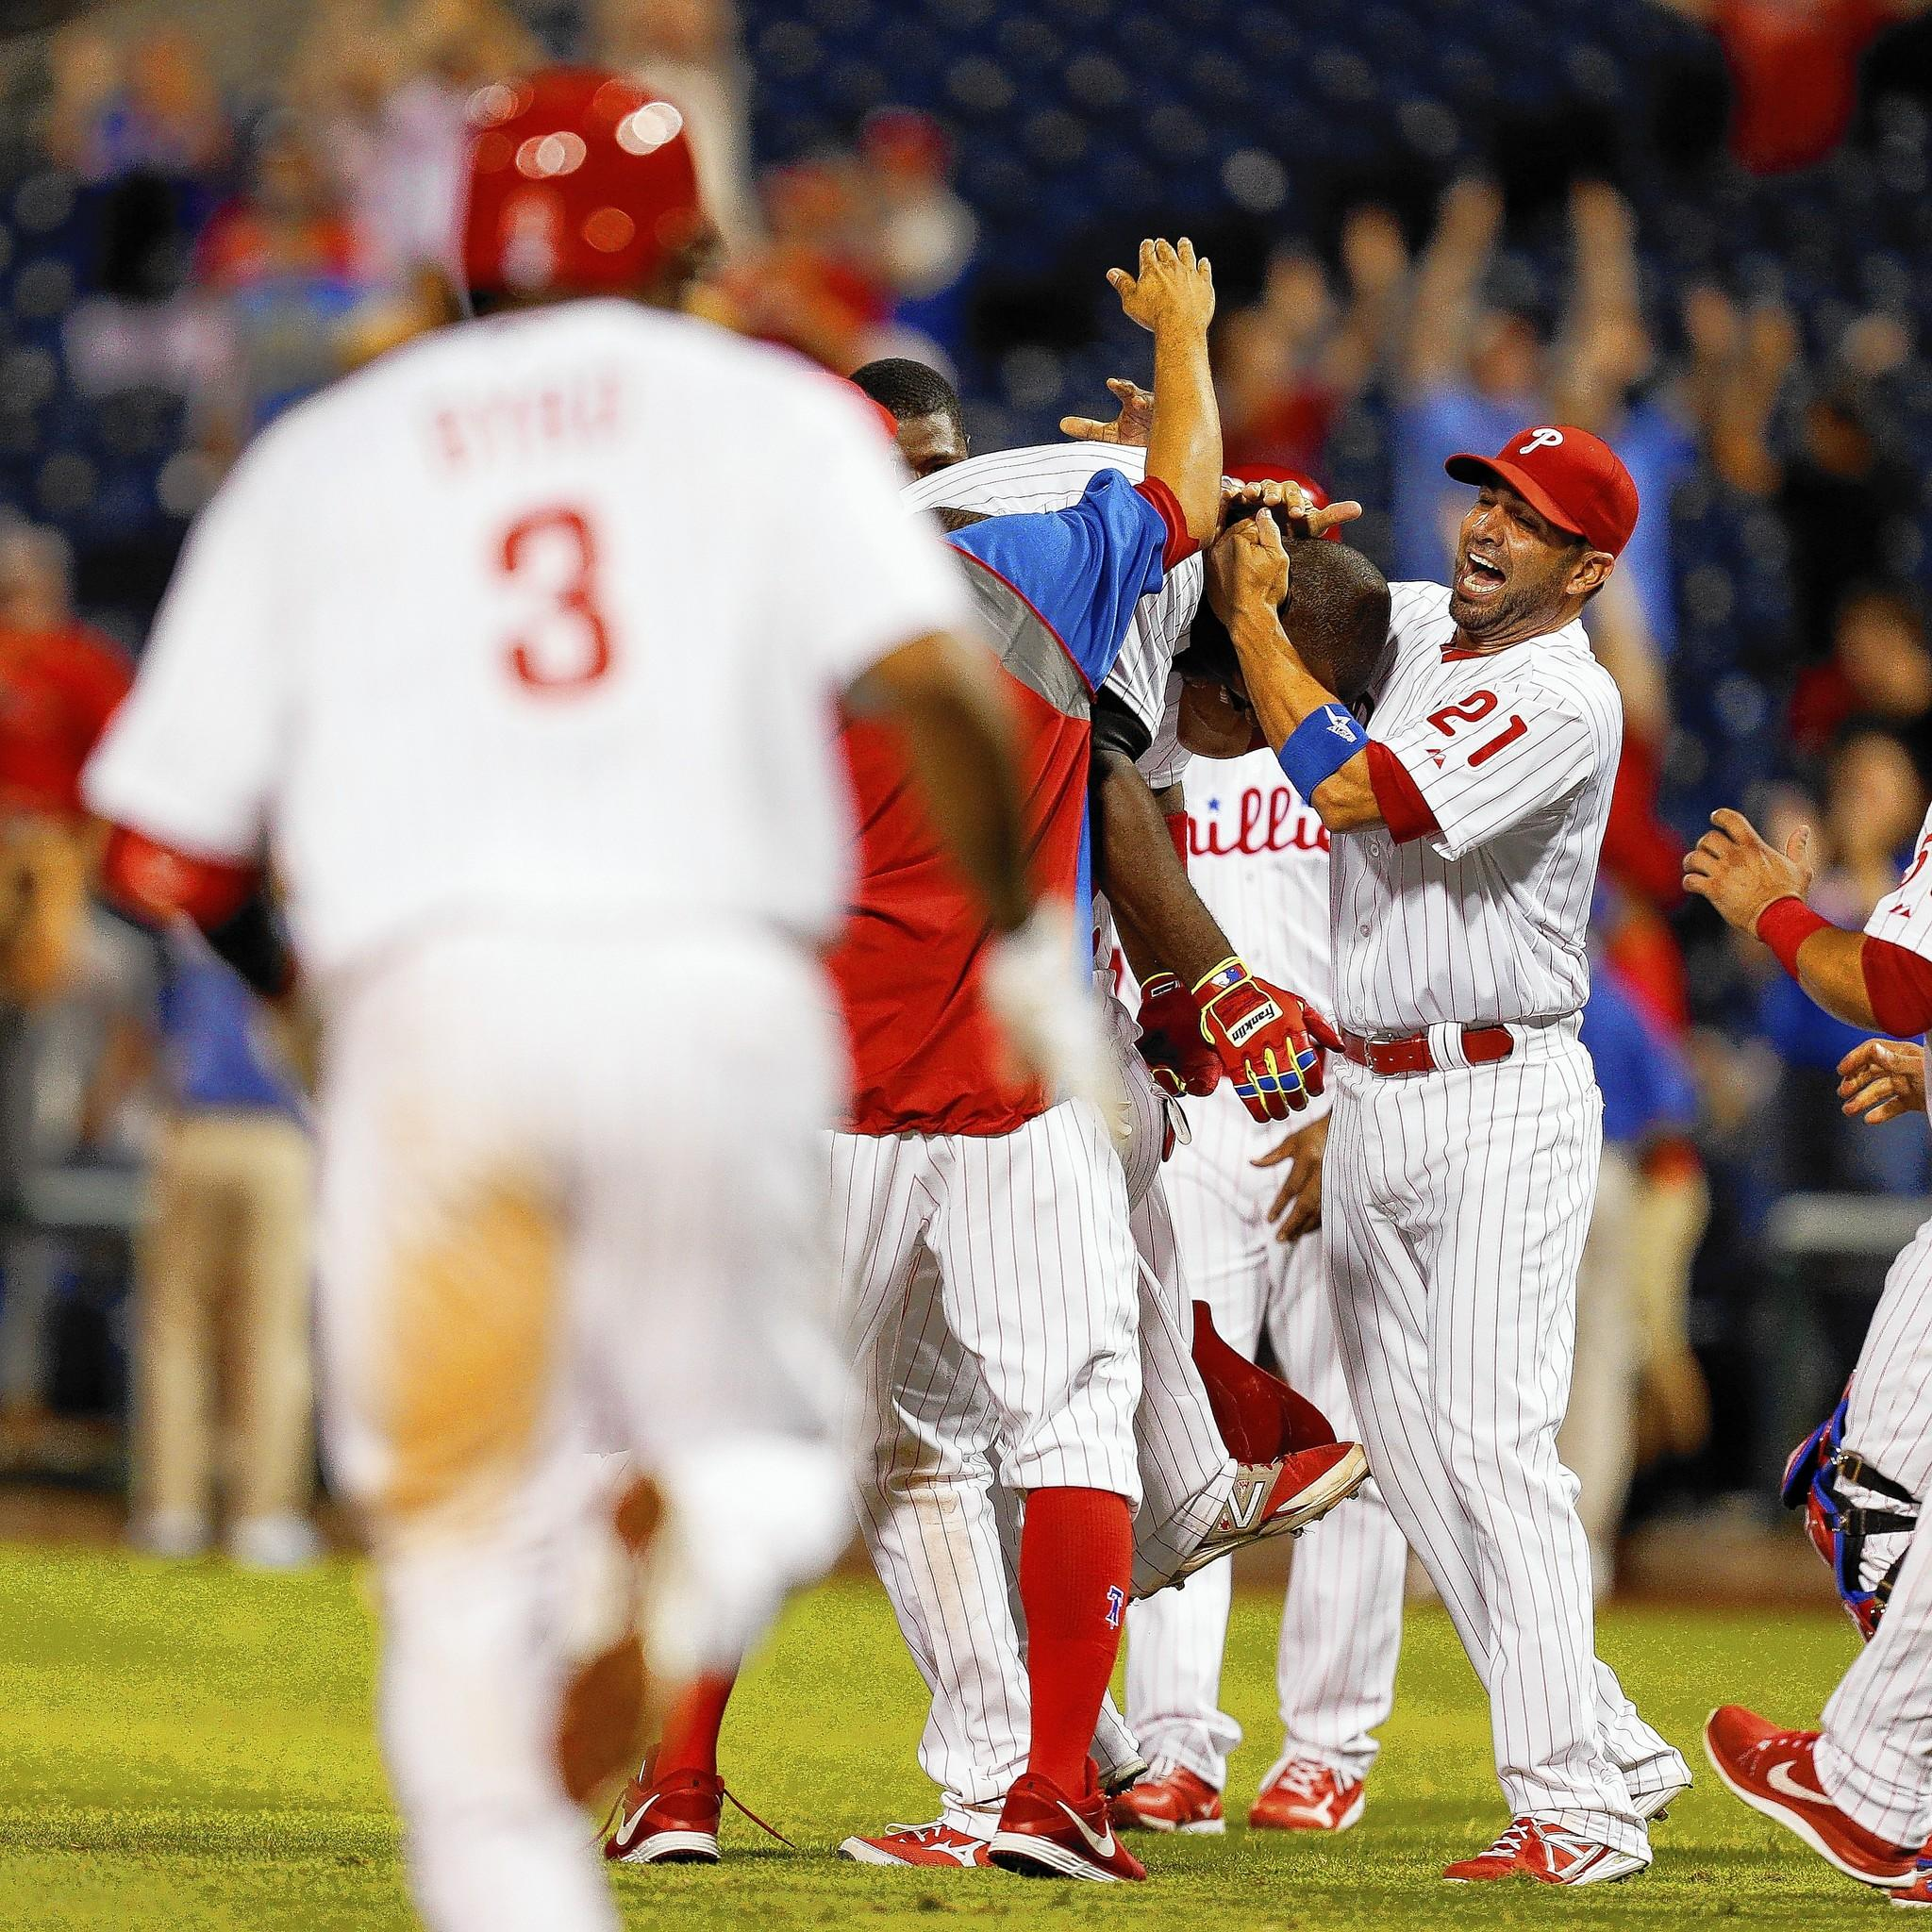 Ryan Howard of the Philadelphia Phillies is swarmed by teammates including Wil Nieves (right) after Howard hit a walk off RBI single in the bottom of the 15th inning of the game against the Houston Astros at Citizens Bank Park.